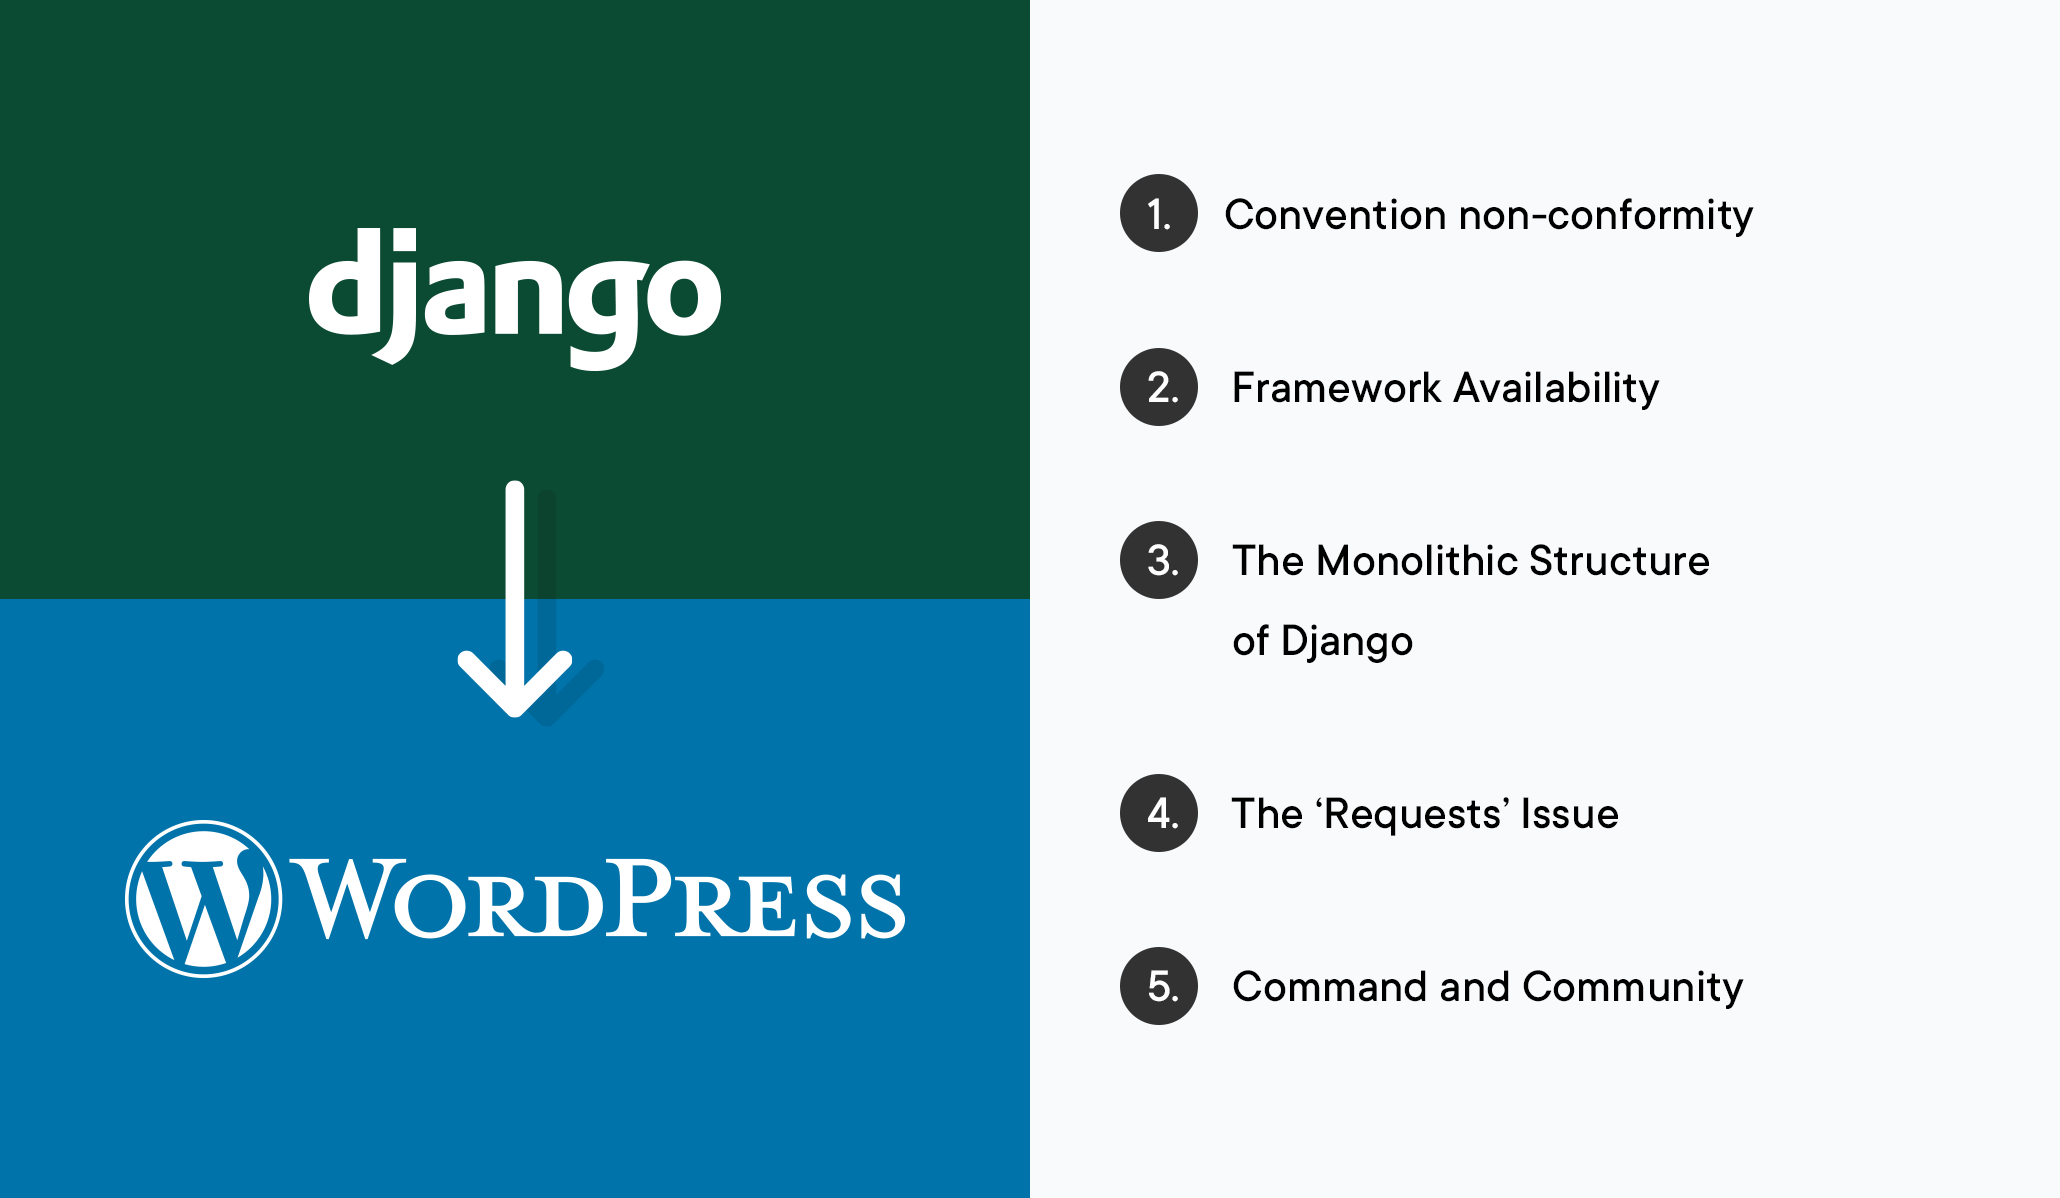 5 Reasons Why Migrating Django to WordPress Makes Sense